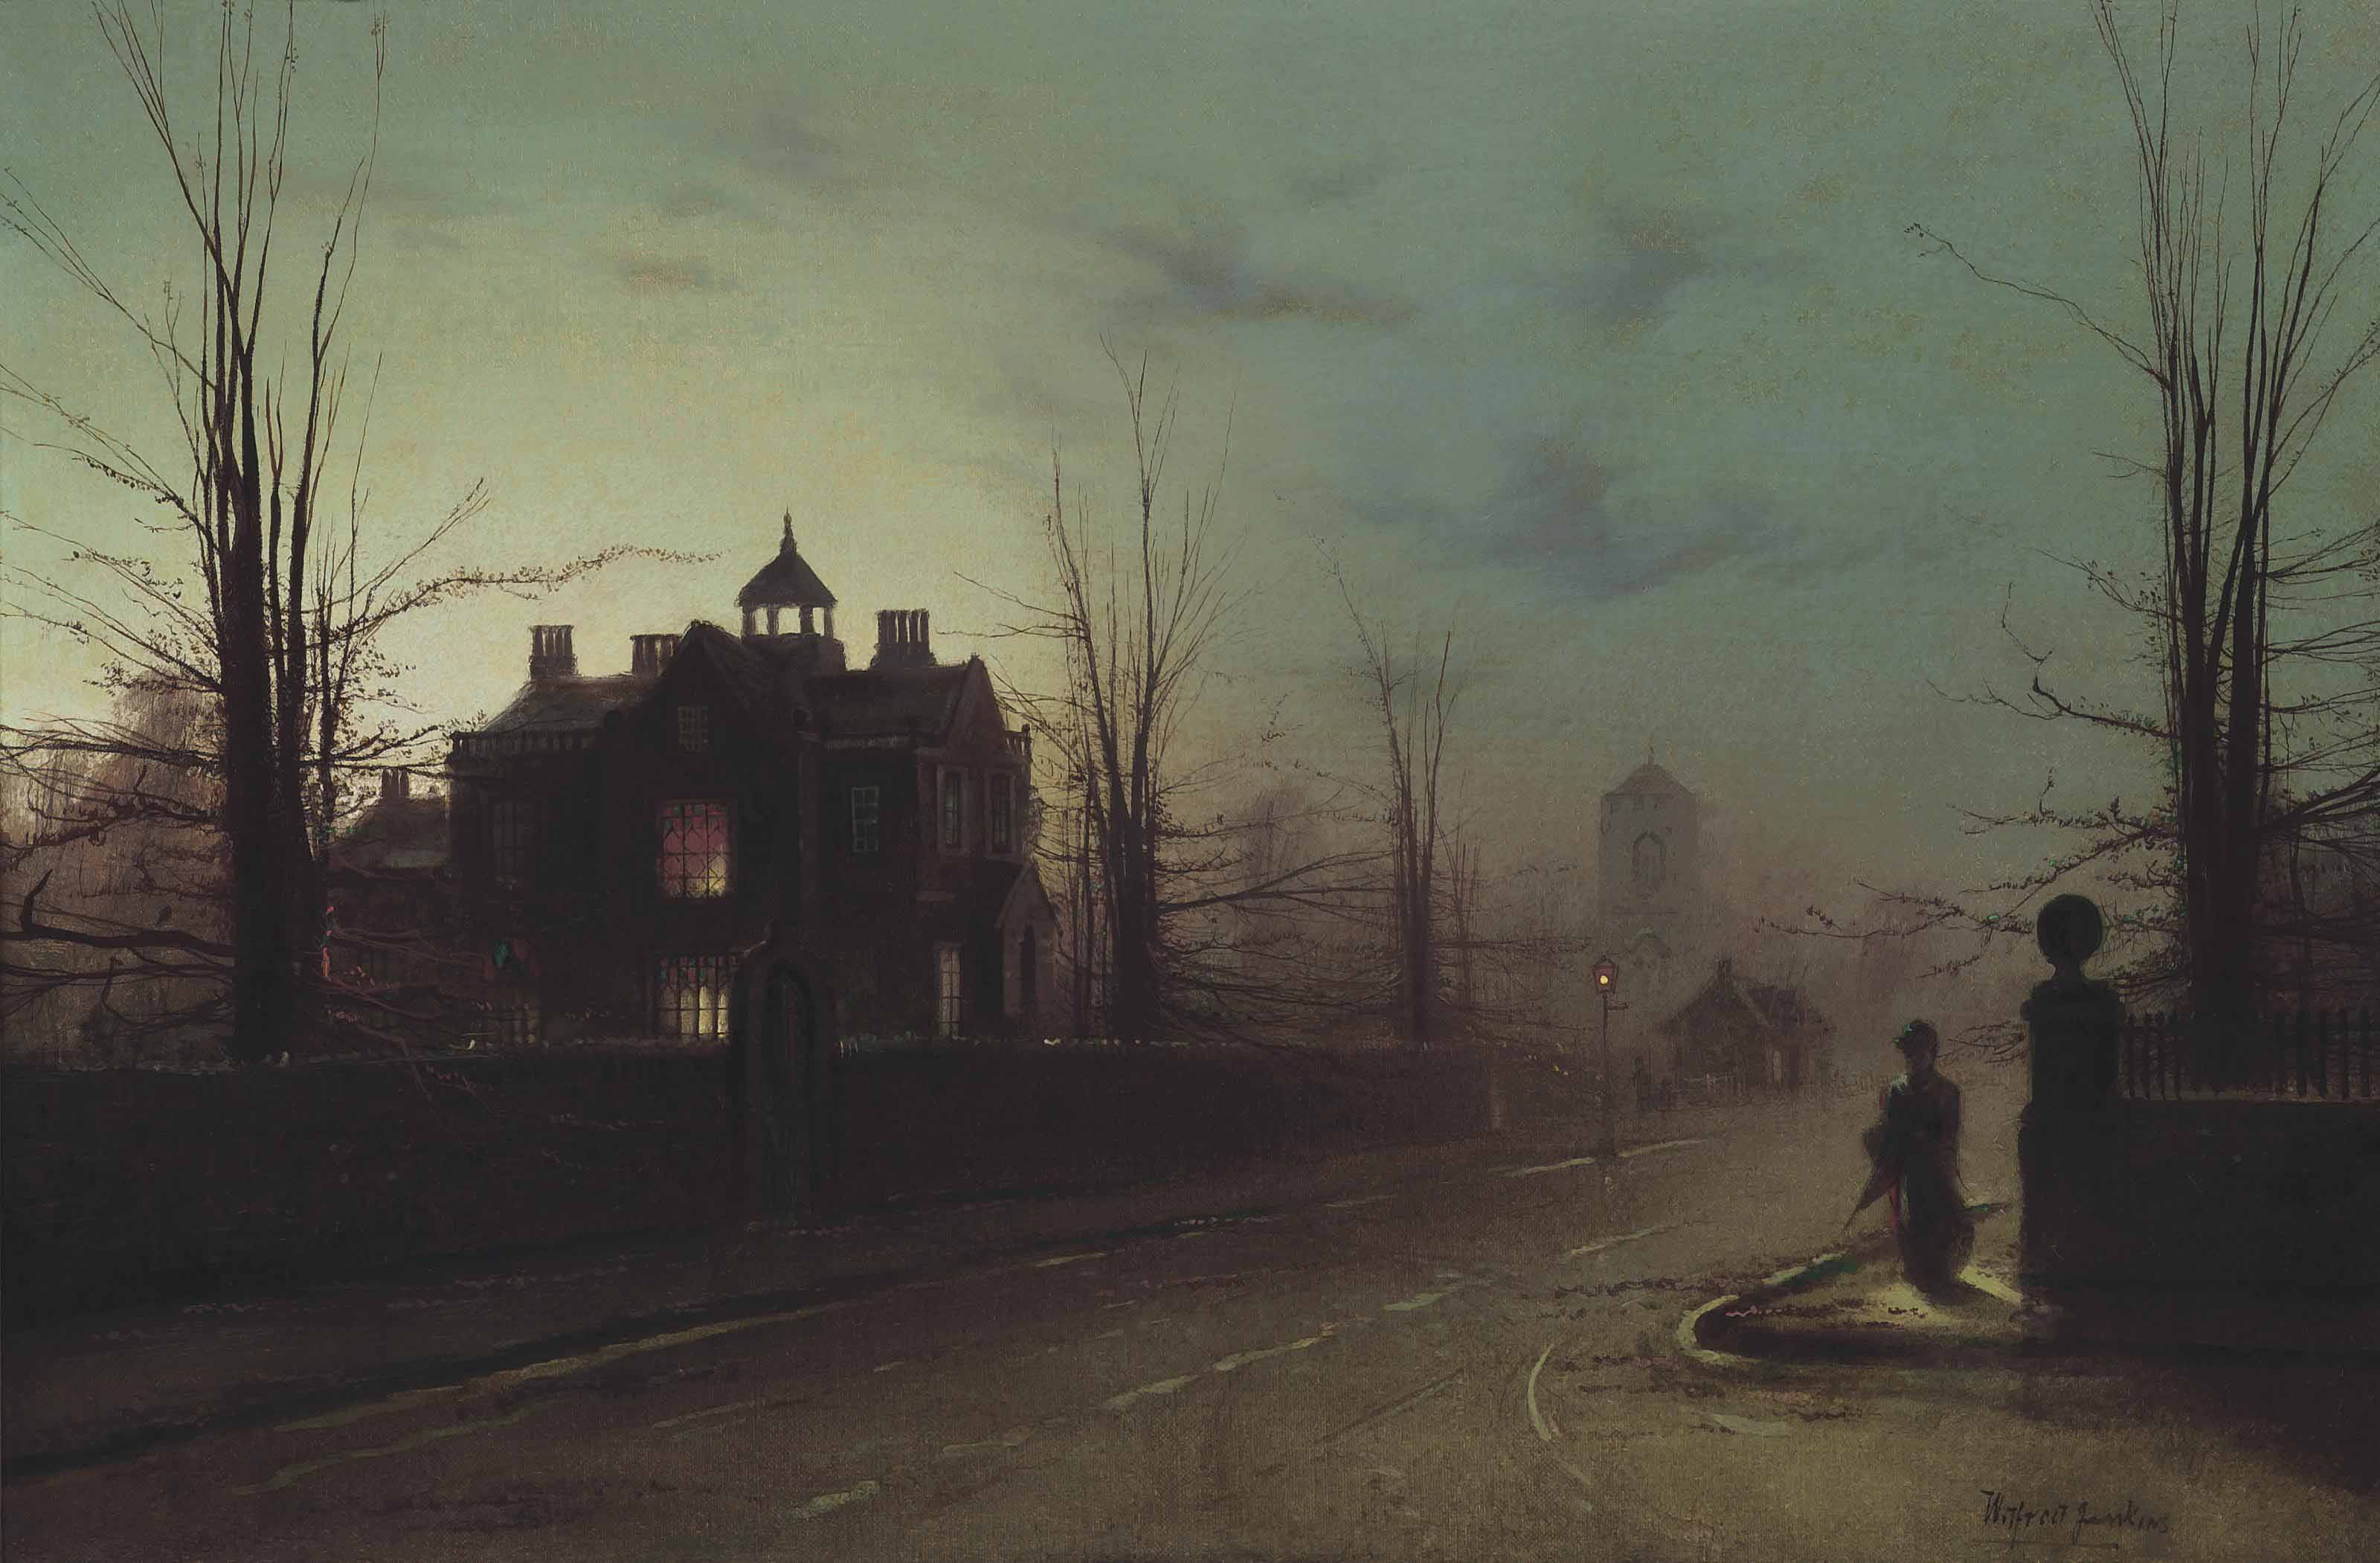 A lady on a street corner, early evening, after rain